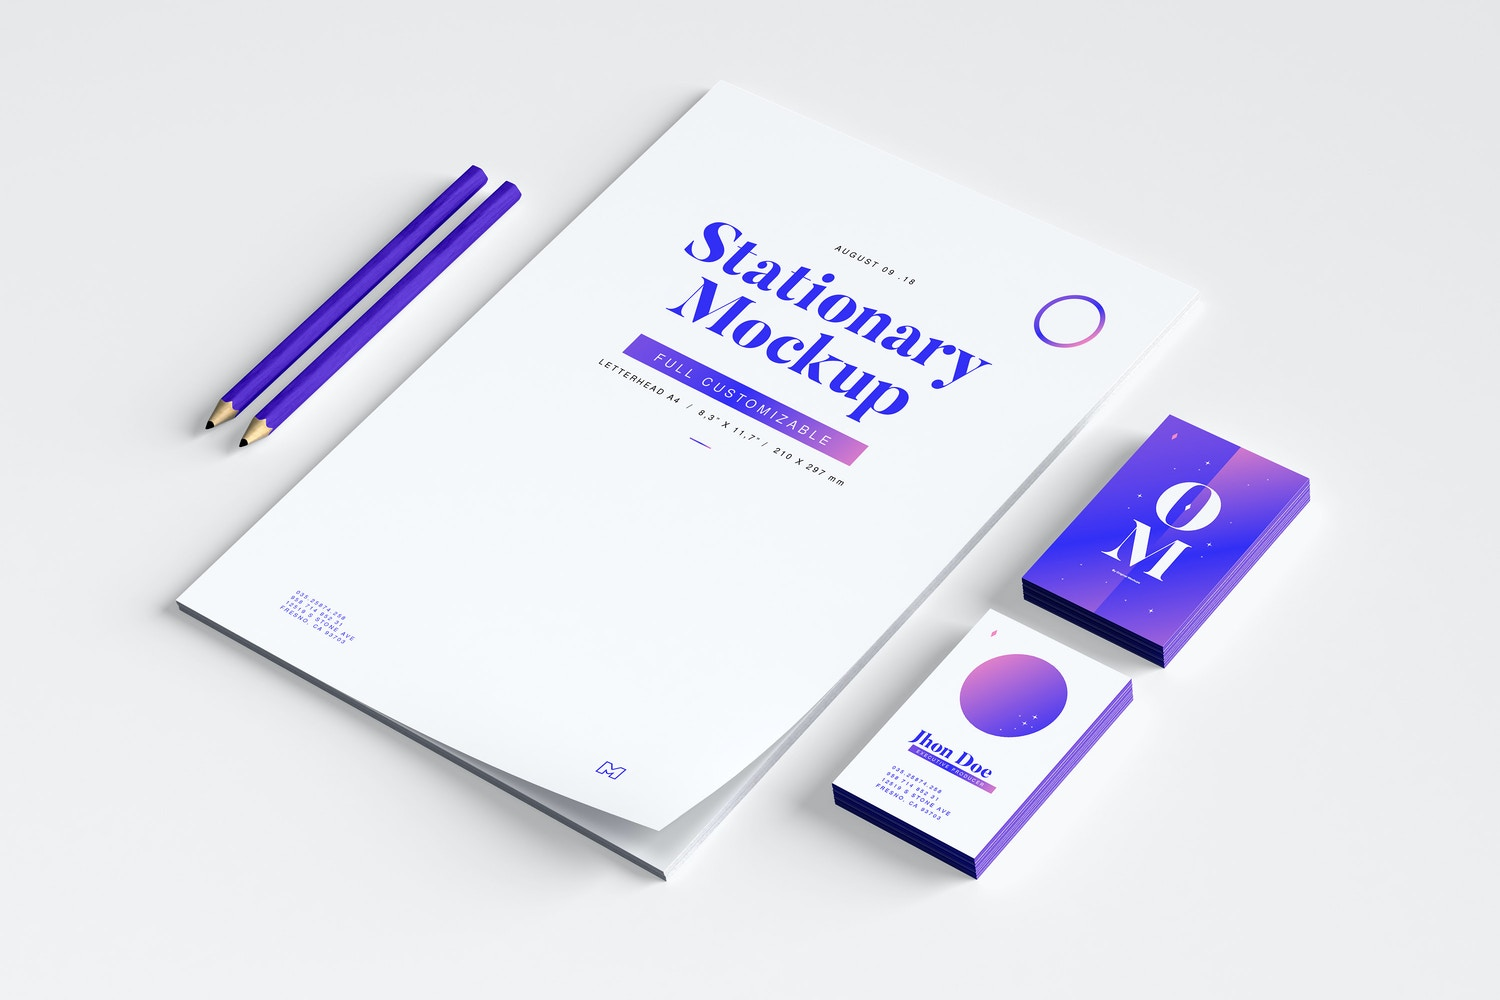 Stationery Mockup 03 by Original Mockups on Original Mockups